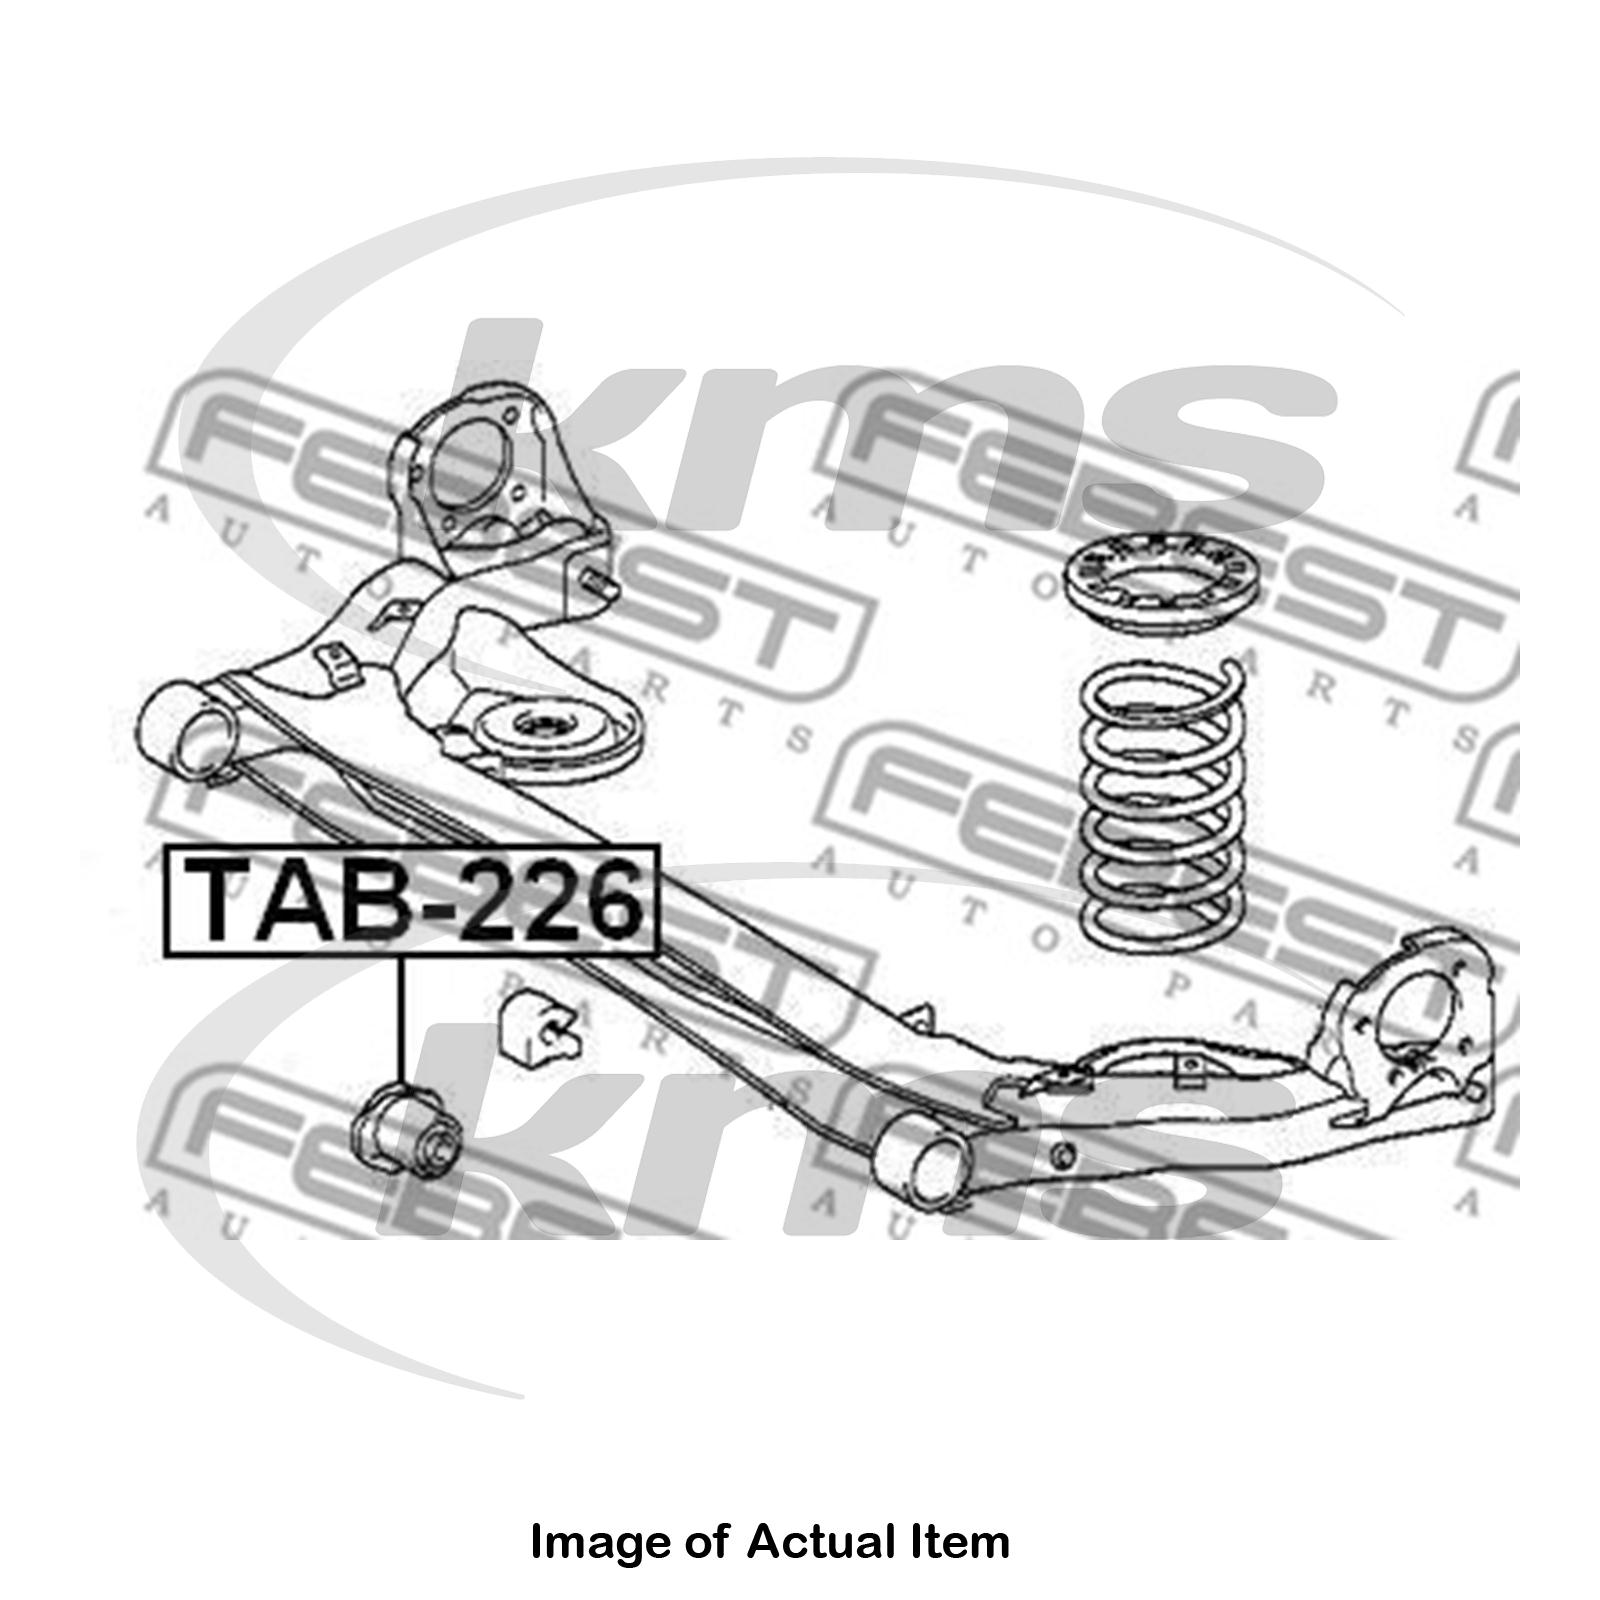 New Genuine FEBEST Axle Beam Mounting TAB-226 Top German Quality